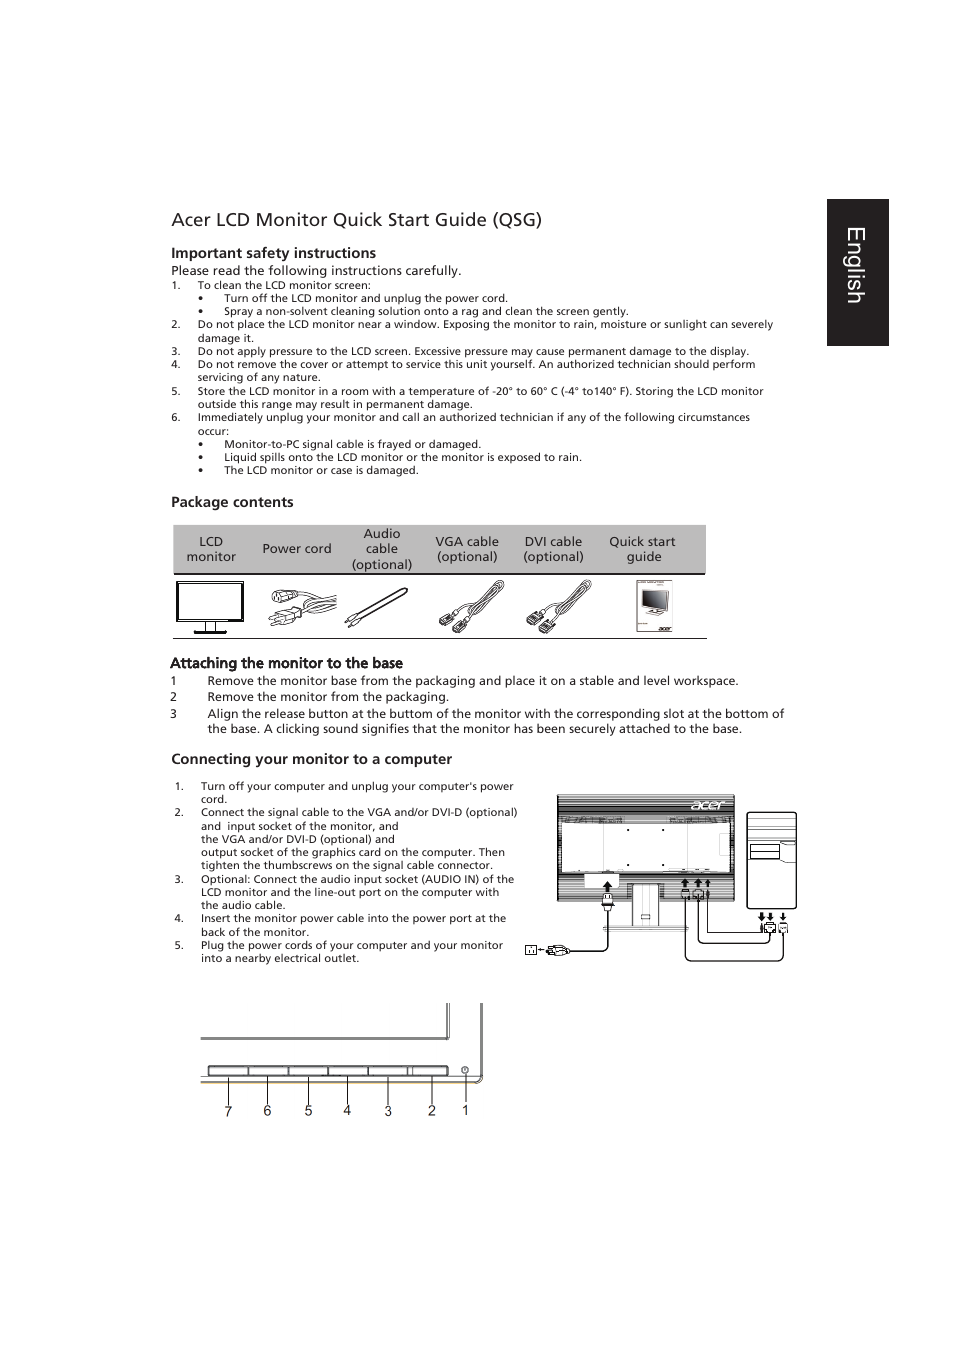 Mini Dvi Wiring Diagram Free Download Cable Captivating Gallery Best Image Pinout Chart At